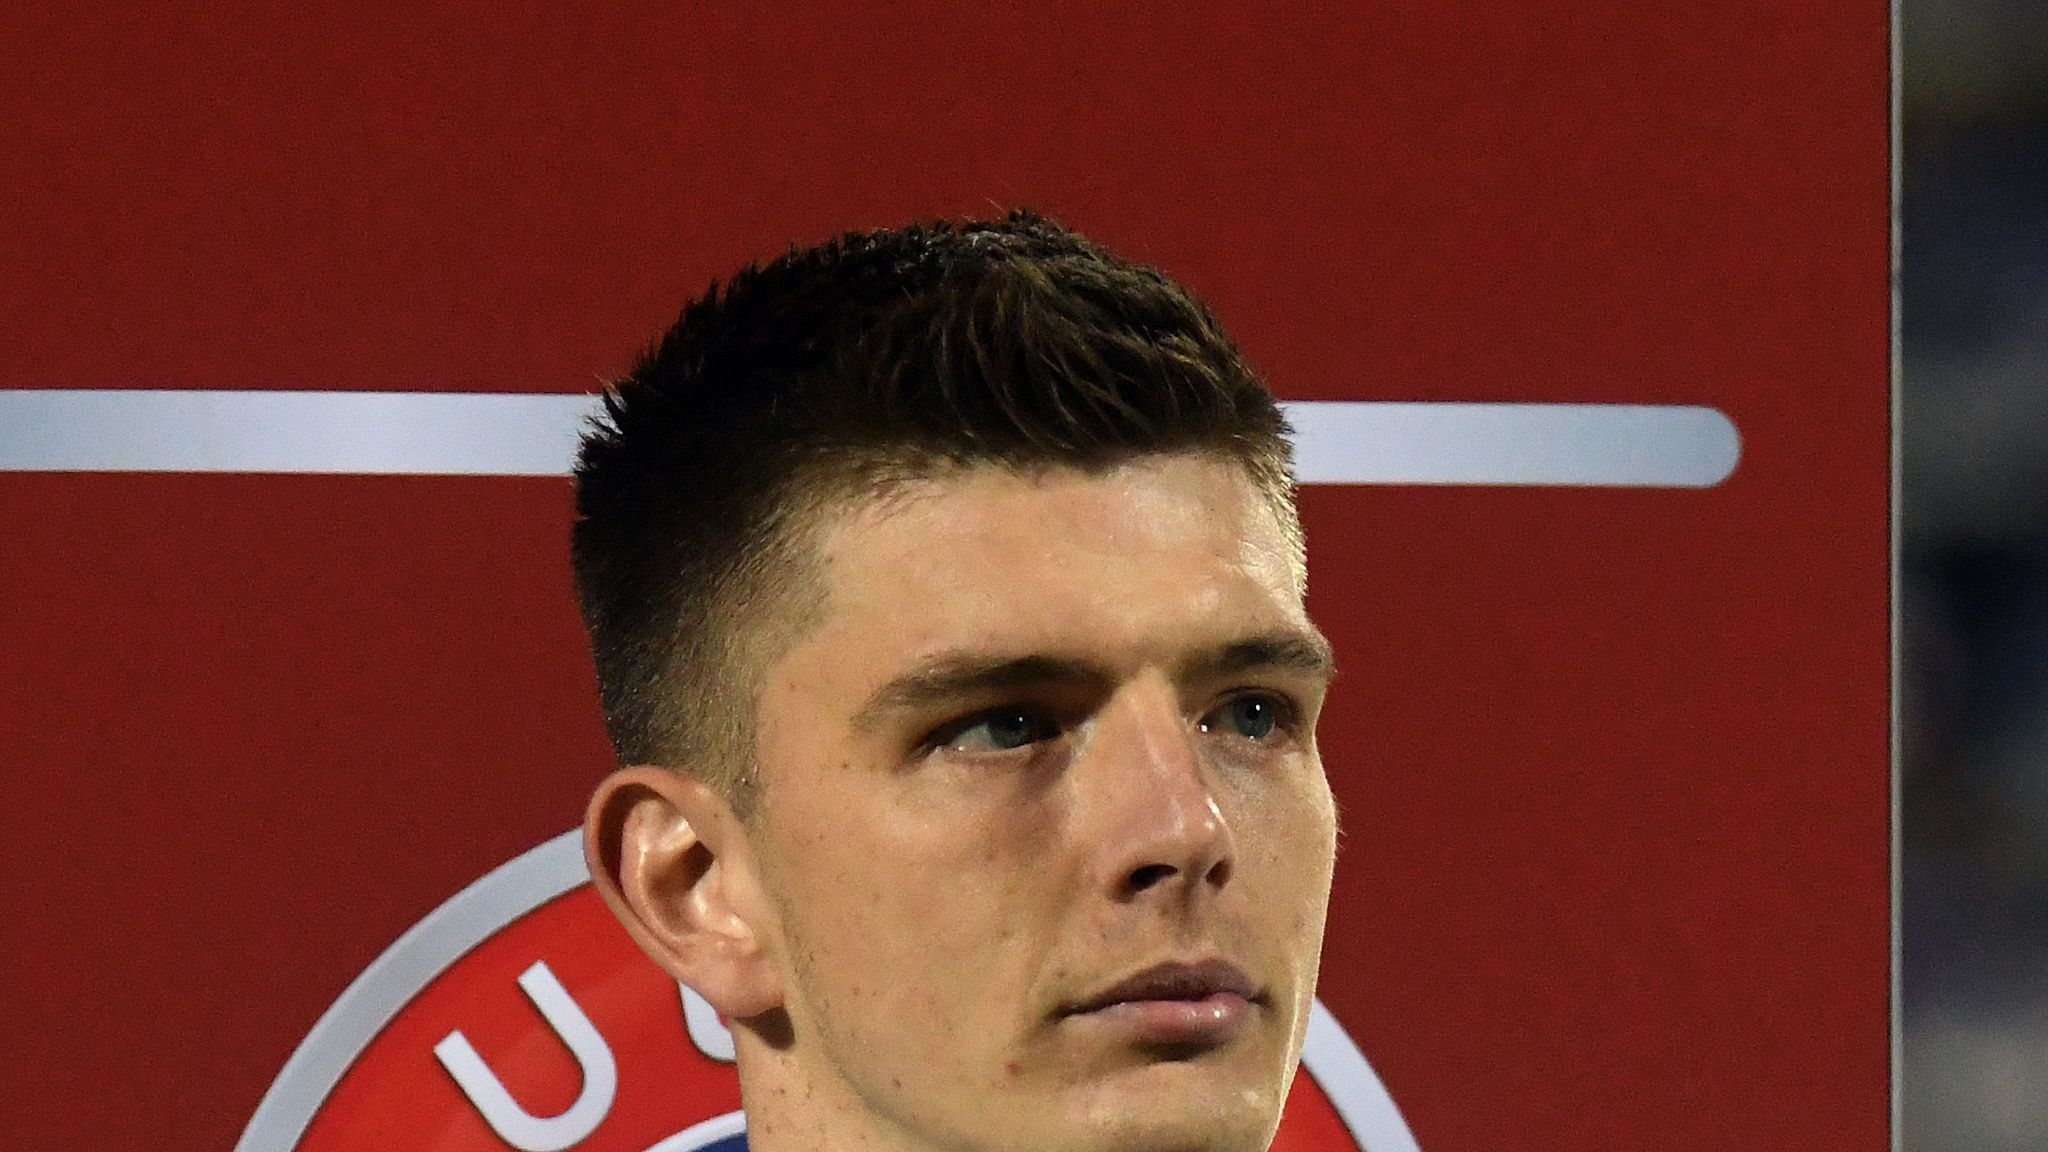 Burnley boss Sean Dyche pleased with Nick Pope's development